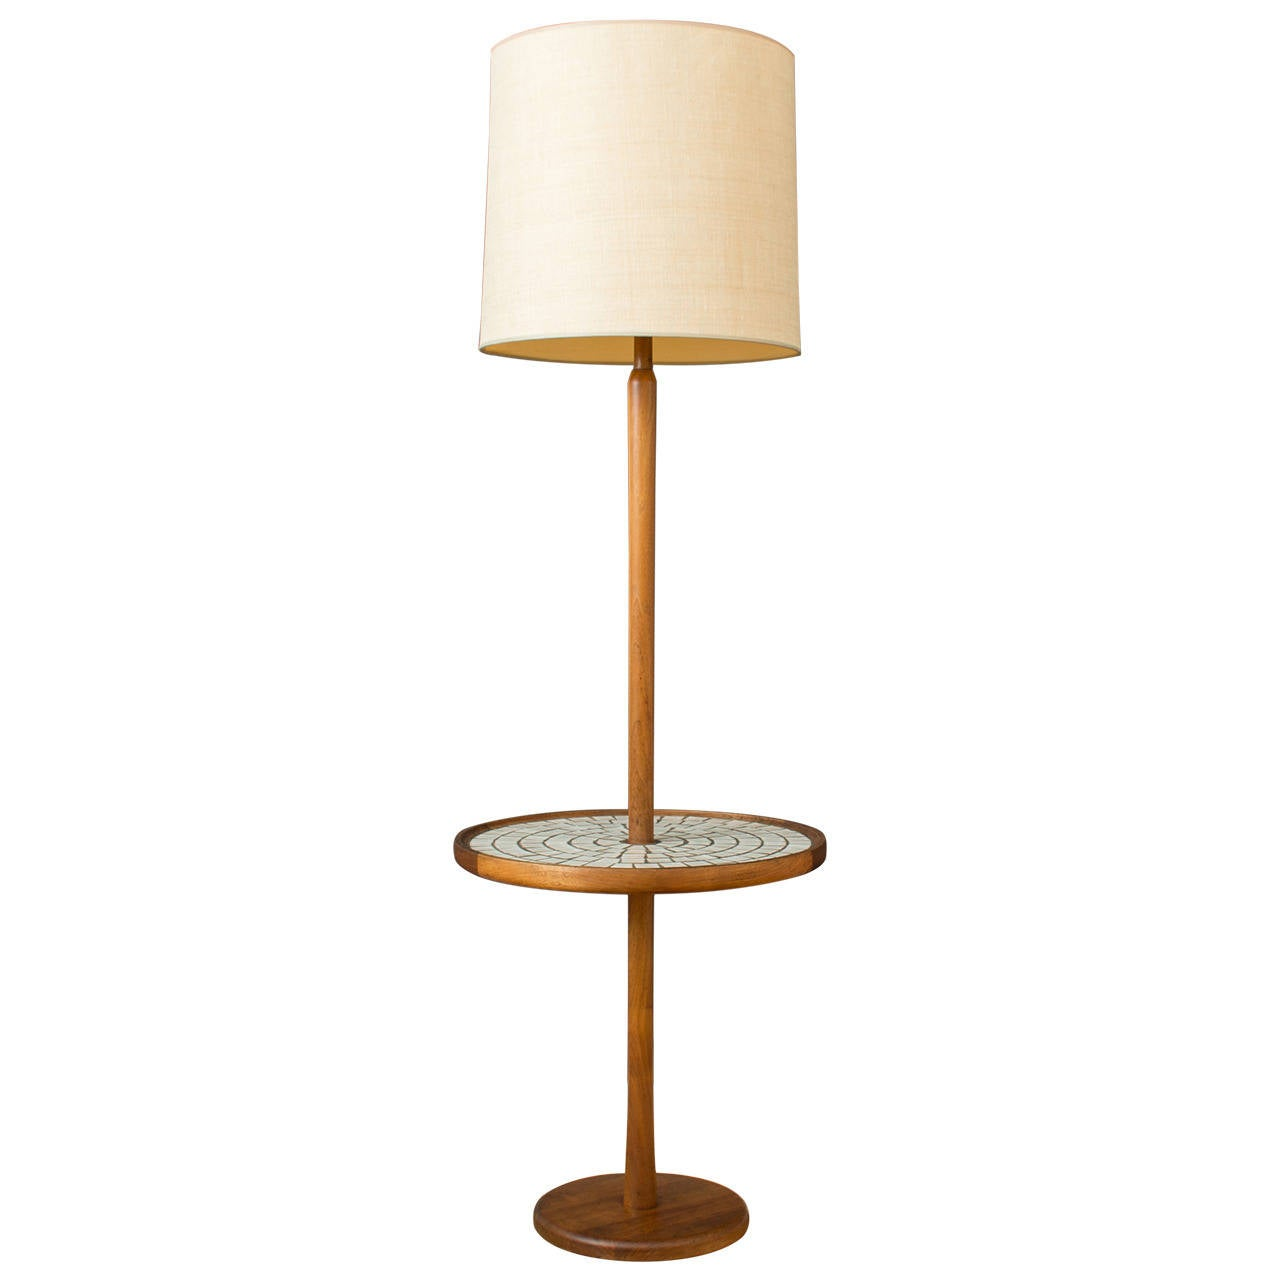 vintage floor lamp with mosaic table by gordon and jane martz at 1stdibs. Black Bedroom Furniture Sets. Home Design Ideas